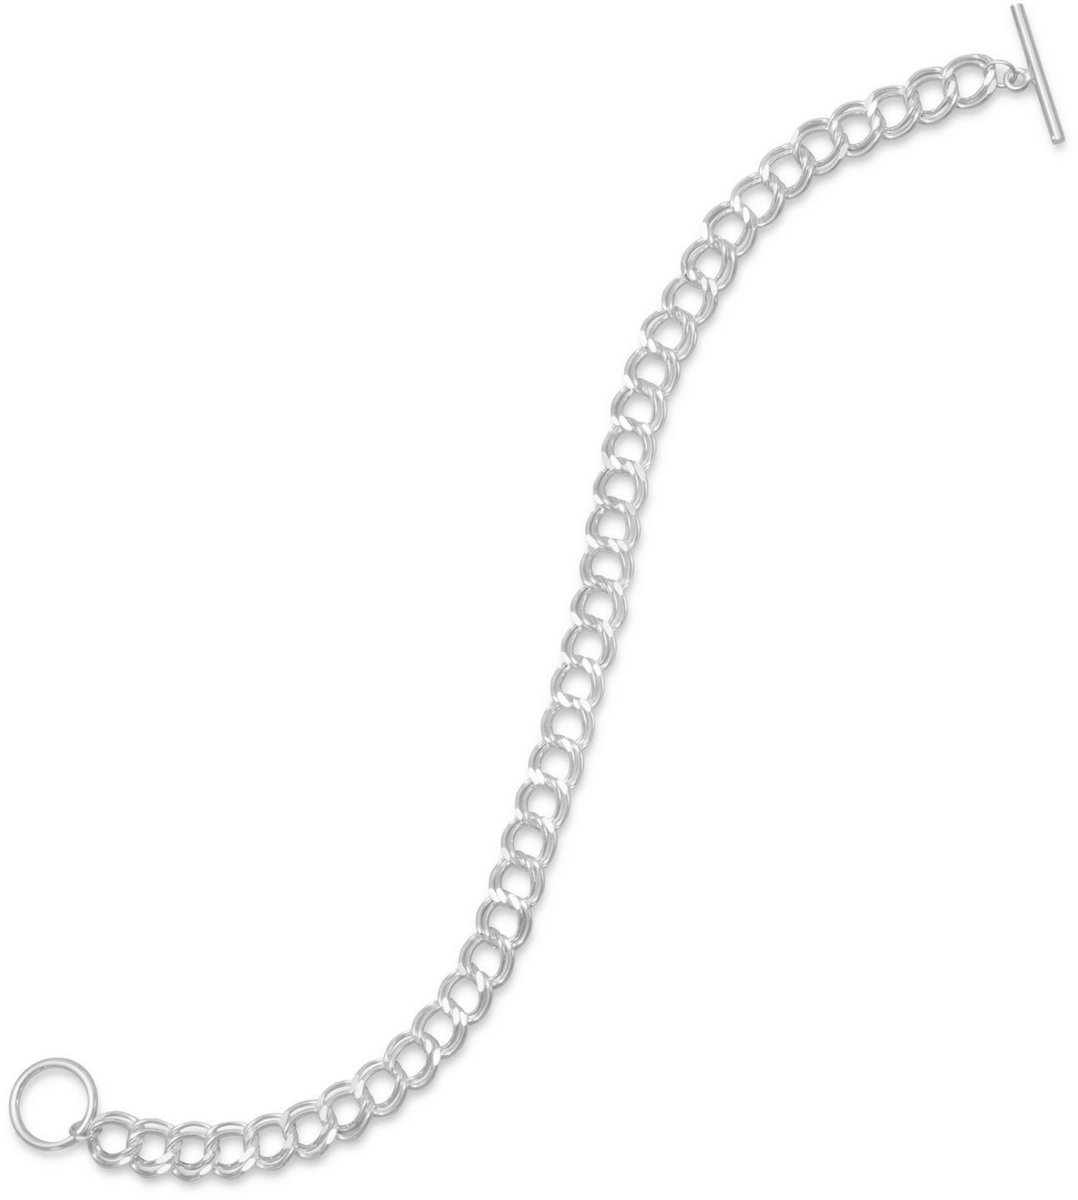 "7.5"" Diamond Cut Toggle Charm Bracelet 925 Sterling Silver"